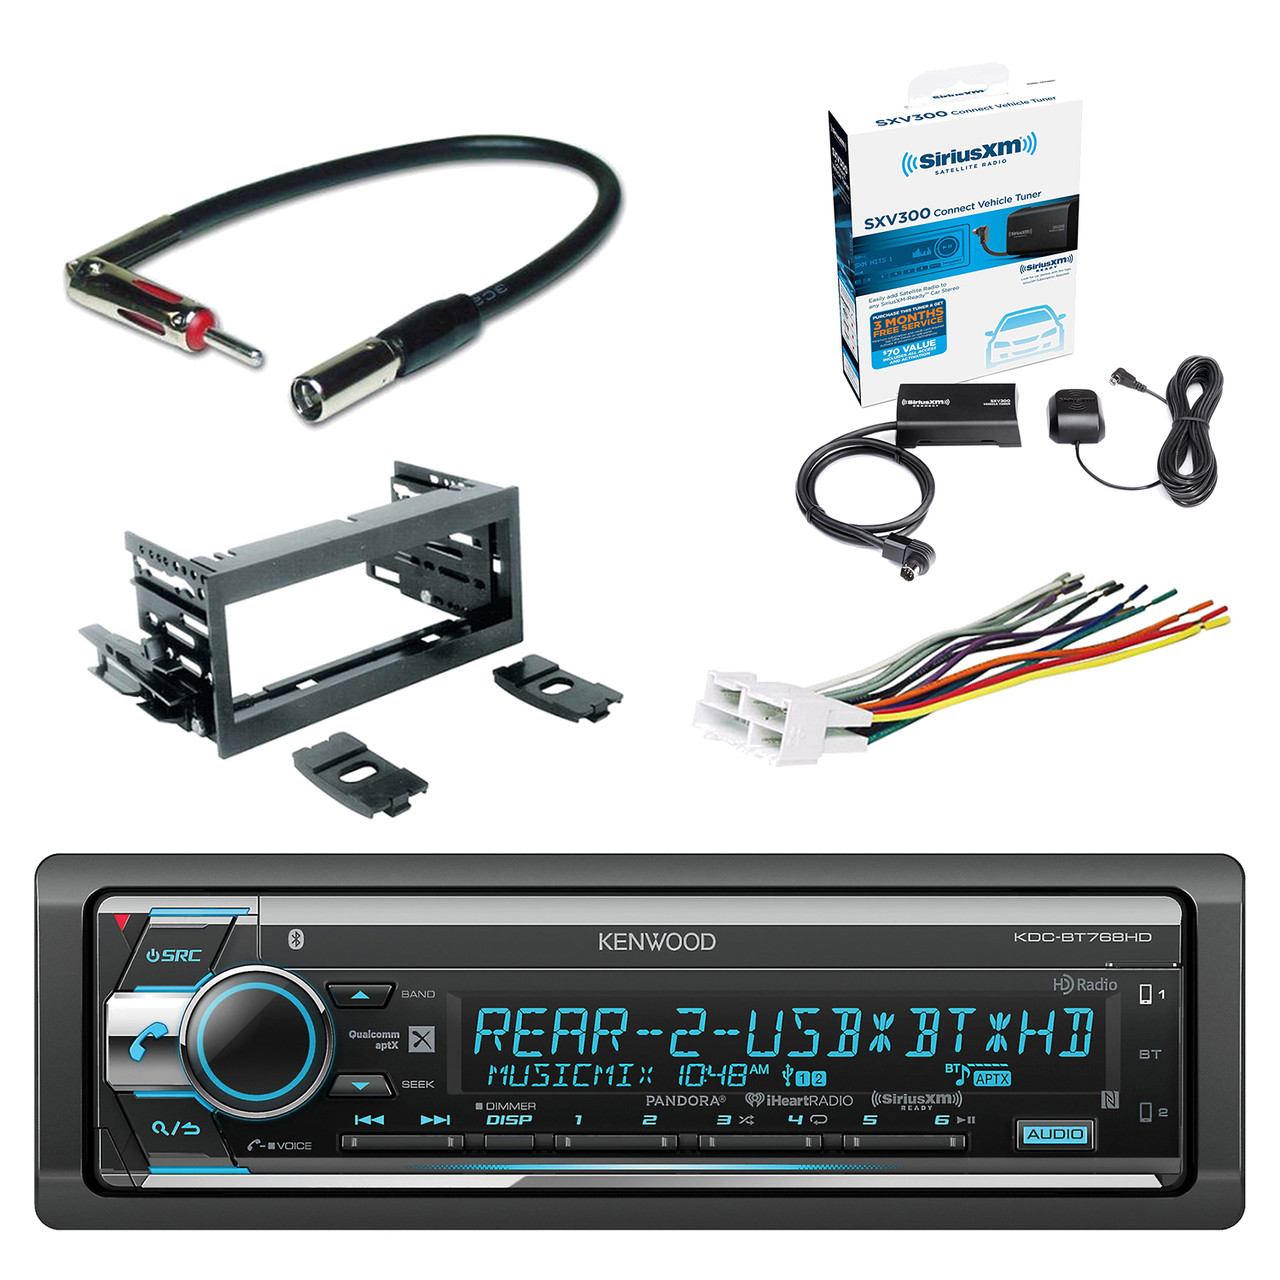 kenwood single din cd am fm car audio receiver with bluetooth xm radio wiring harness adapter [ 1280 x 1280 Pixel ]